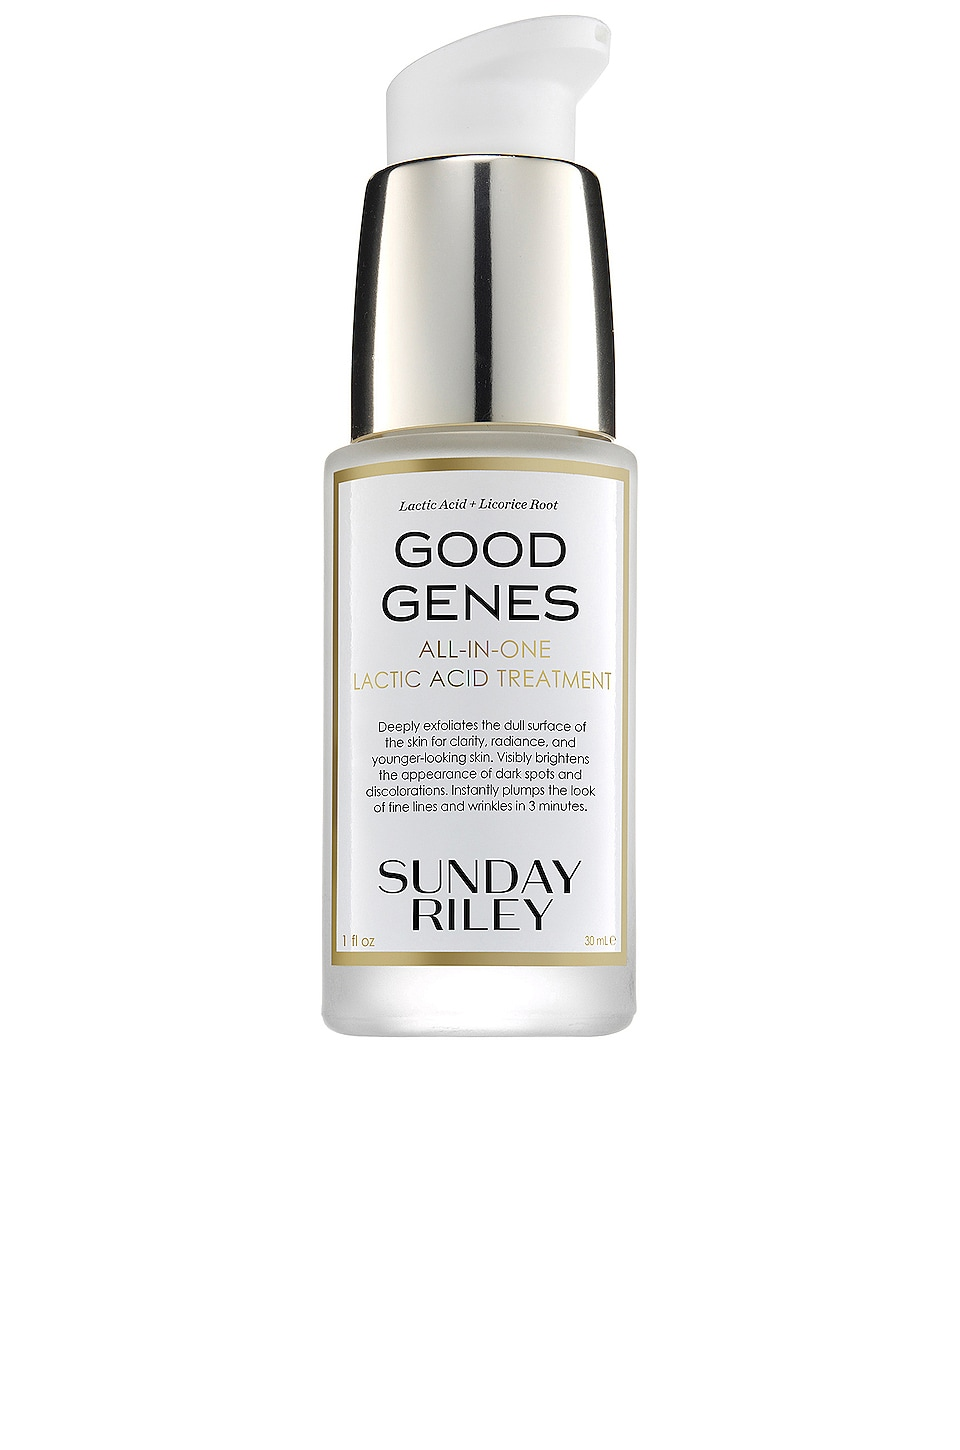 Sunday Riley Travel Good Genes Lactic Acid Treatment